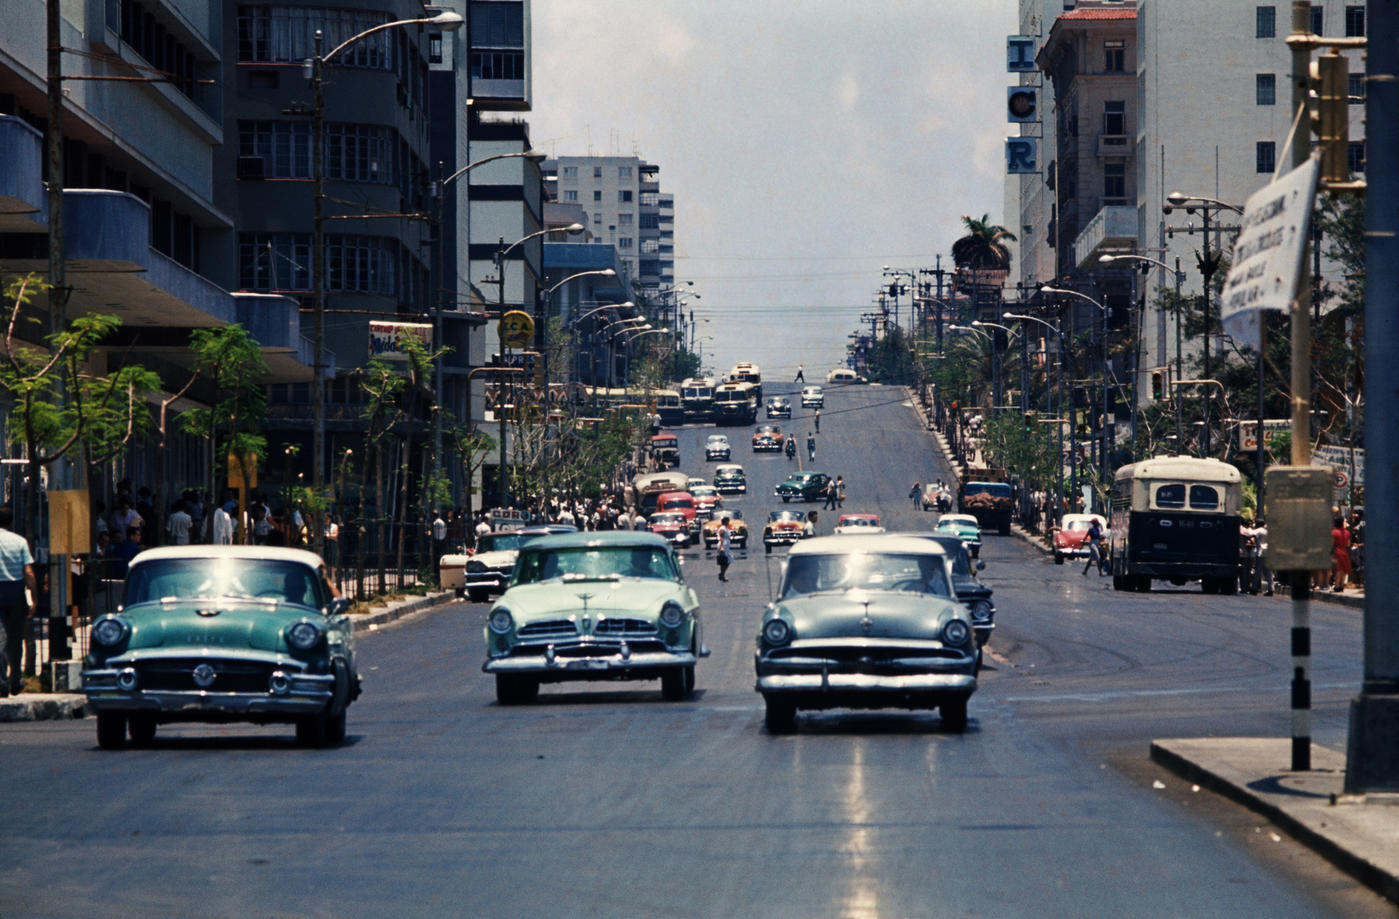 1959 Havana Avenida 23 (also known as La Rampa)